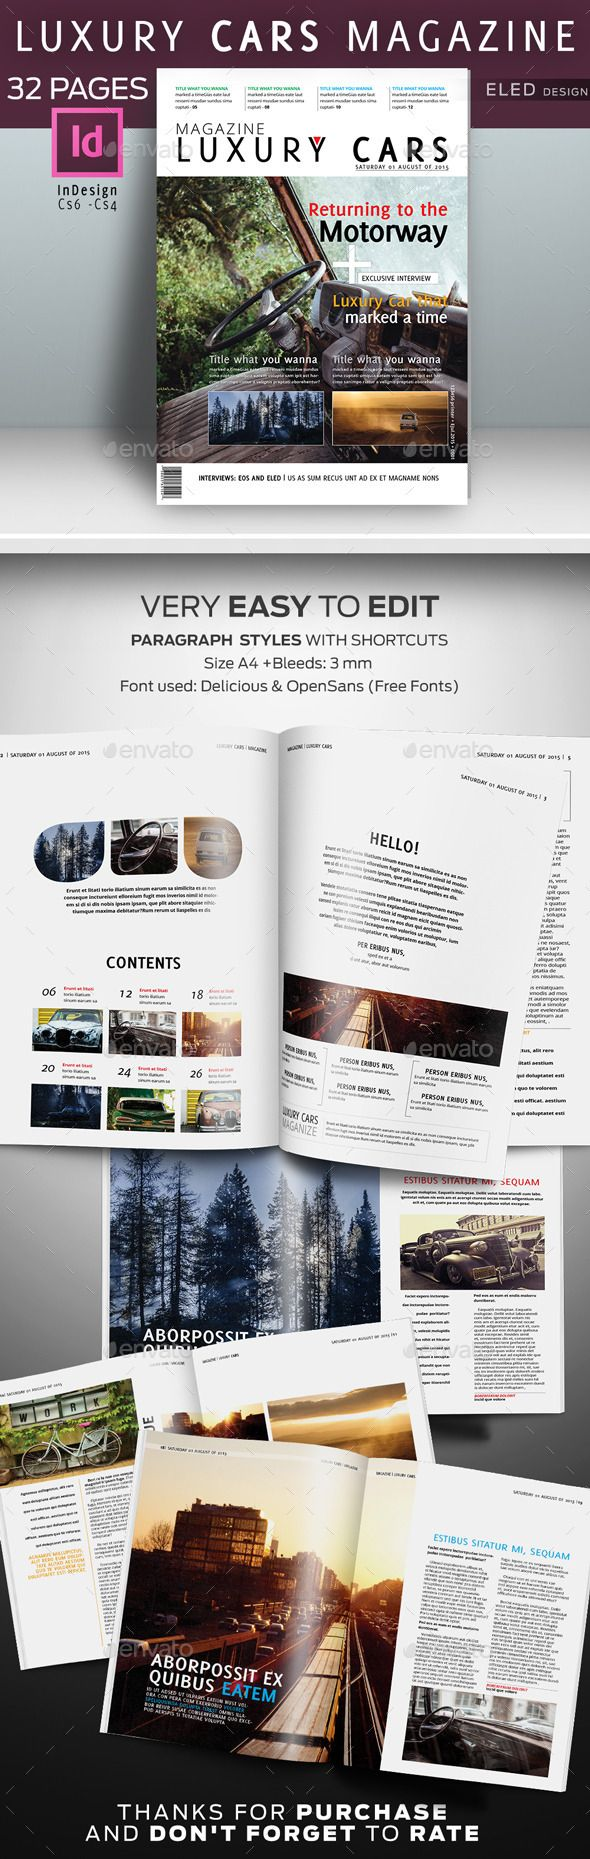 32 Pages Luxury Cars Magazine Template #design  Download: http://graphicriver.net/item/32-pages-luxury-cars-magazine/12324274?ref=ksioks